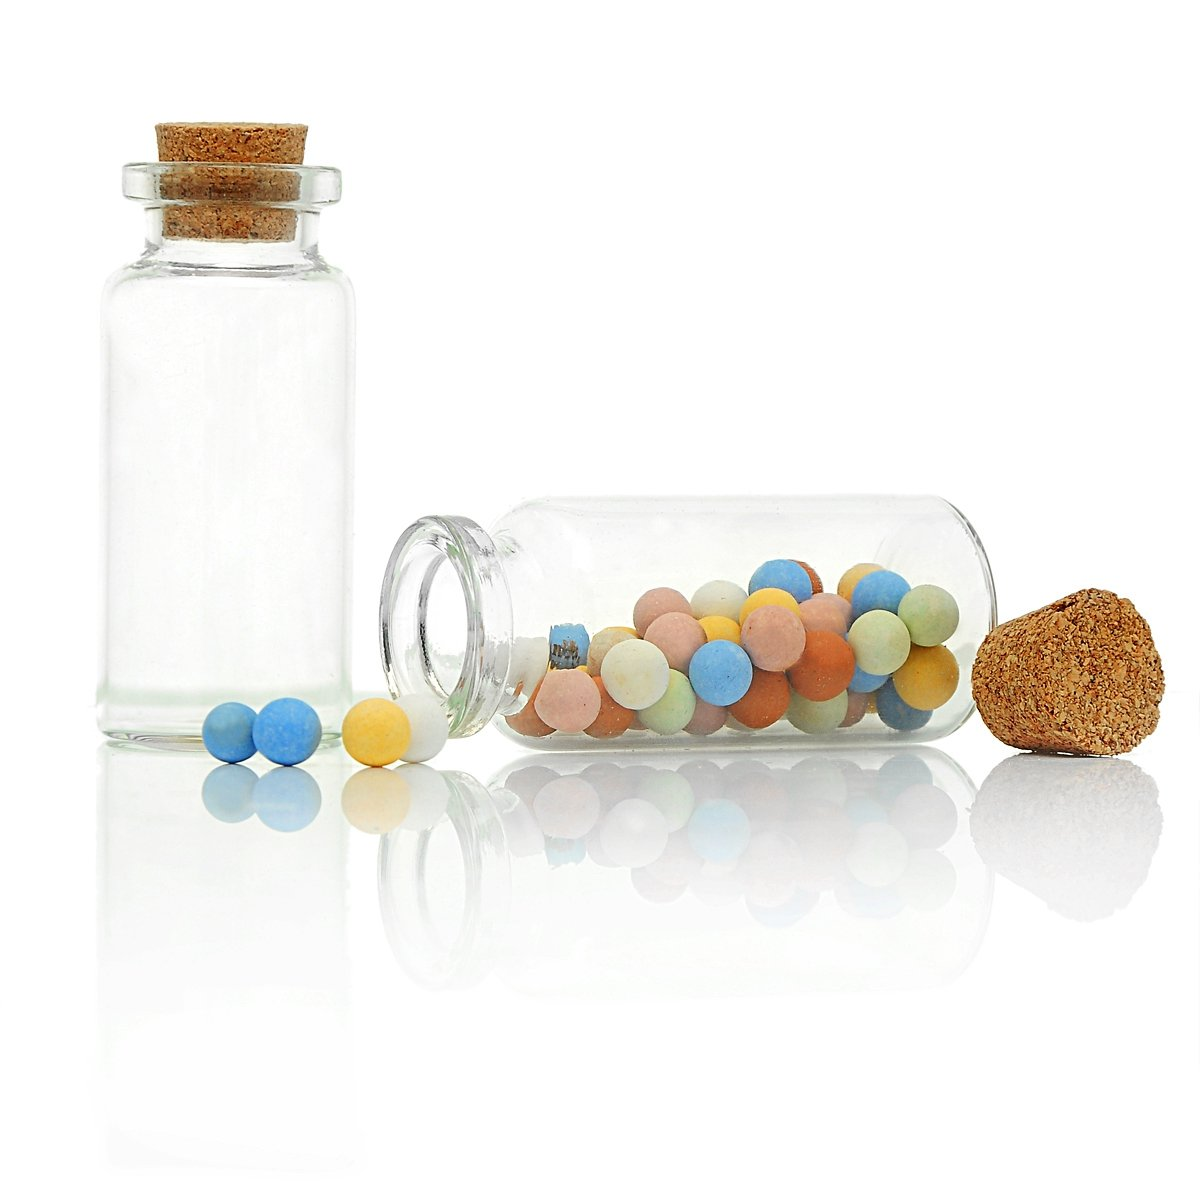 Mini Glass Bottles Vials With Corks for Message Weddings Wish Jewelry Party Favors 5pcs